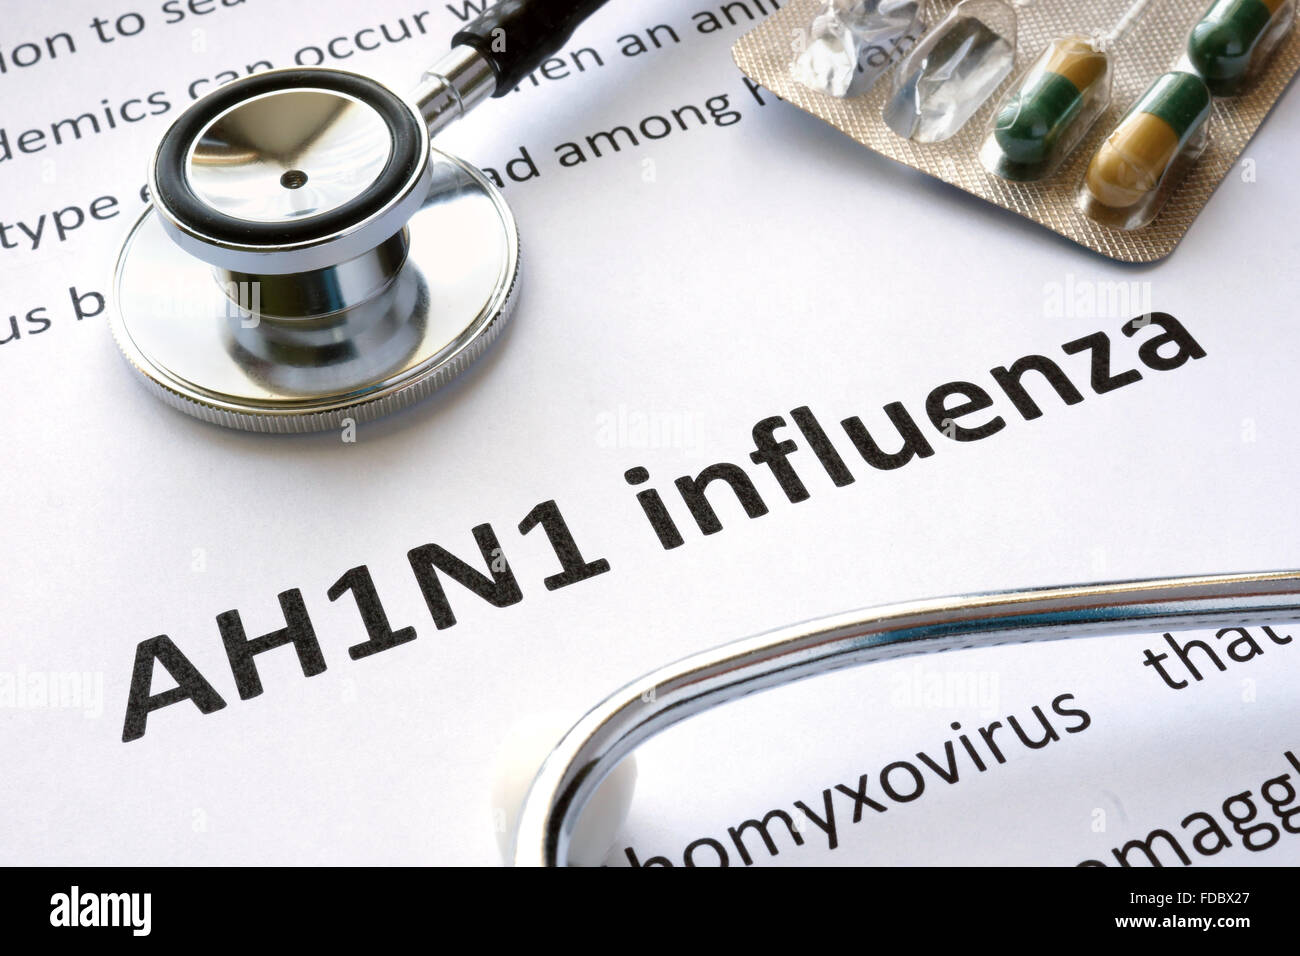 Paper with diagnosis AH1N1 influenza and stethoscope. - Stock Image